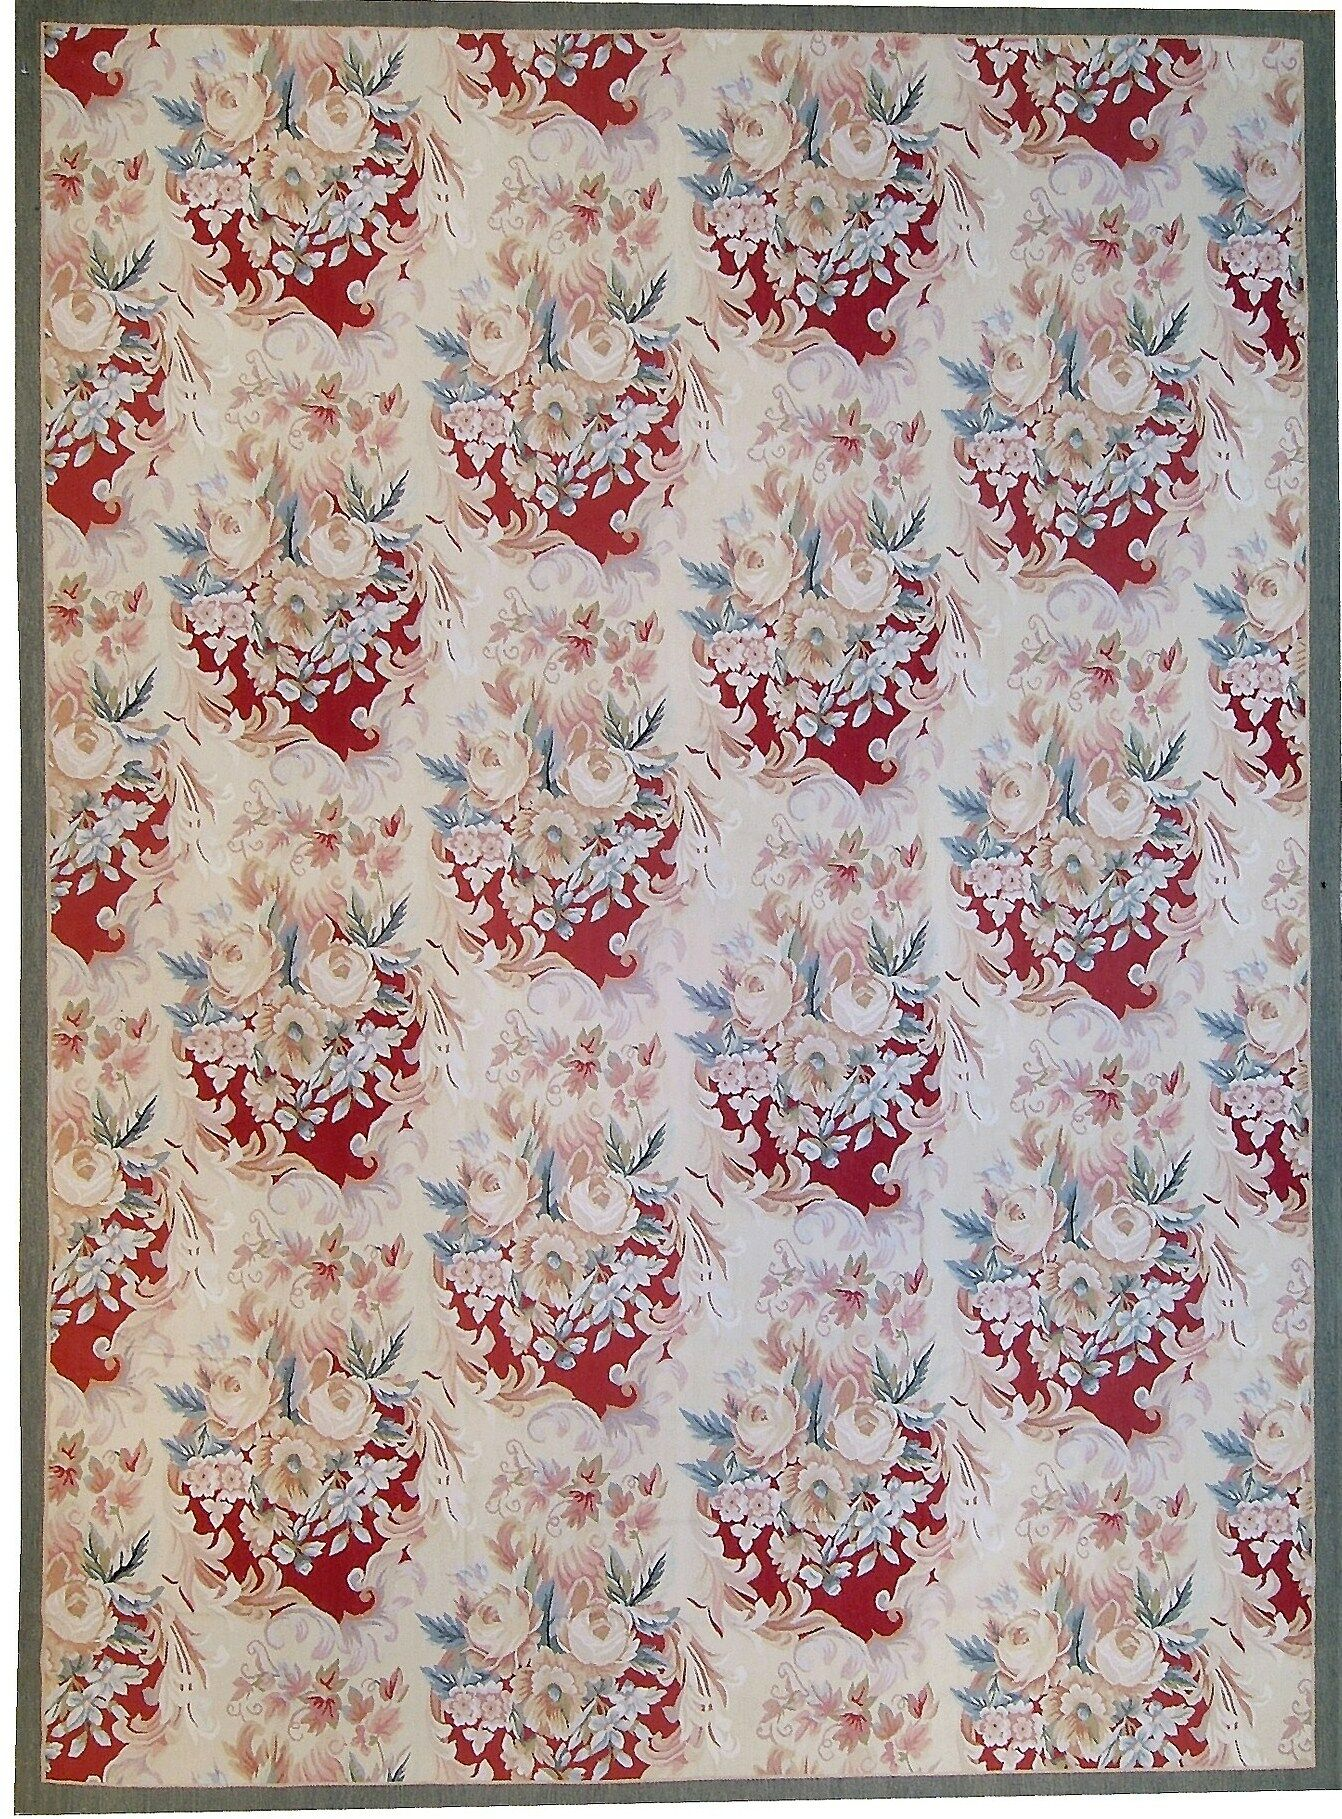 One-of-a-Kind Aubusson Hand Woven Wool Ivory Area Rug Rug Size: Rectangle 11' x 16'2